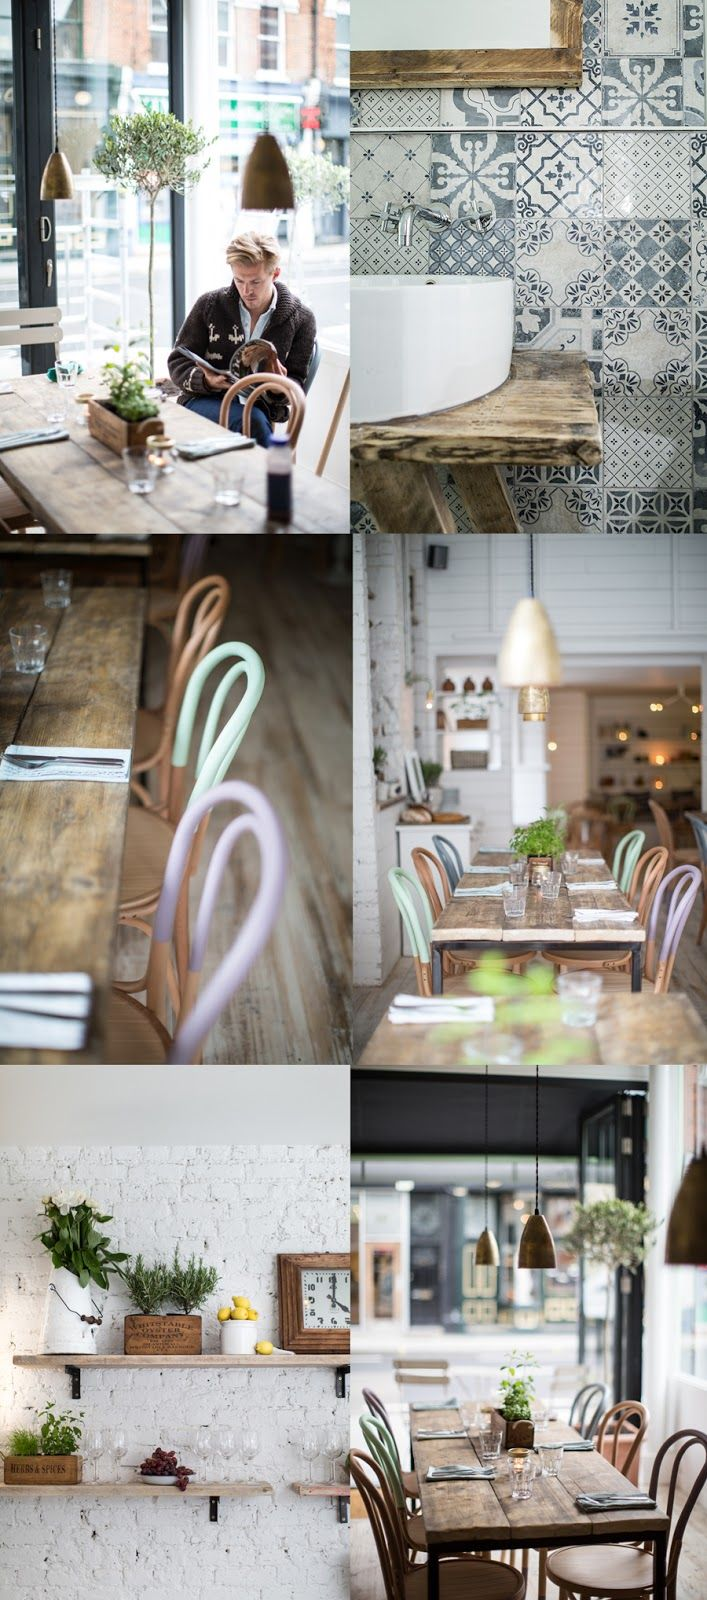 Cafe Interior Design Ideas cafe design interior ideas and cafe decoration on pinterest Hallys Cafe Photography Helen Cathcart Interior Design Alexander Waterworth Interiors